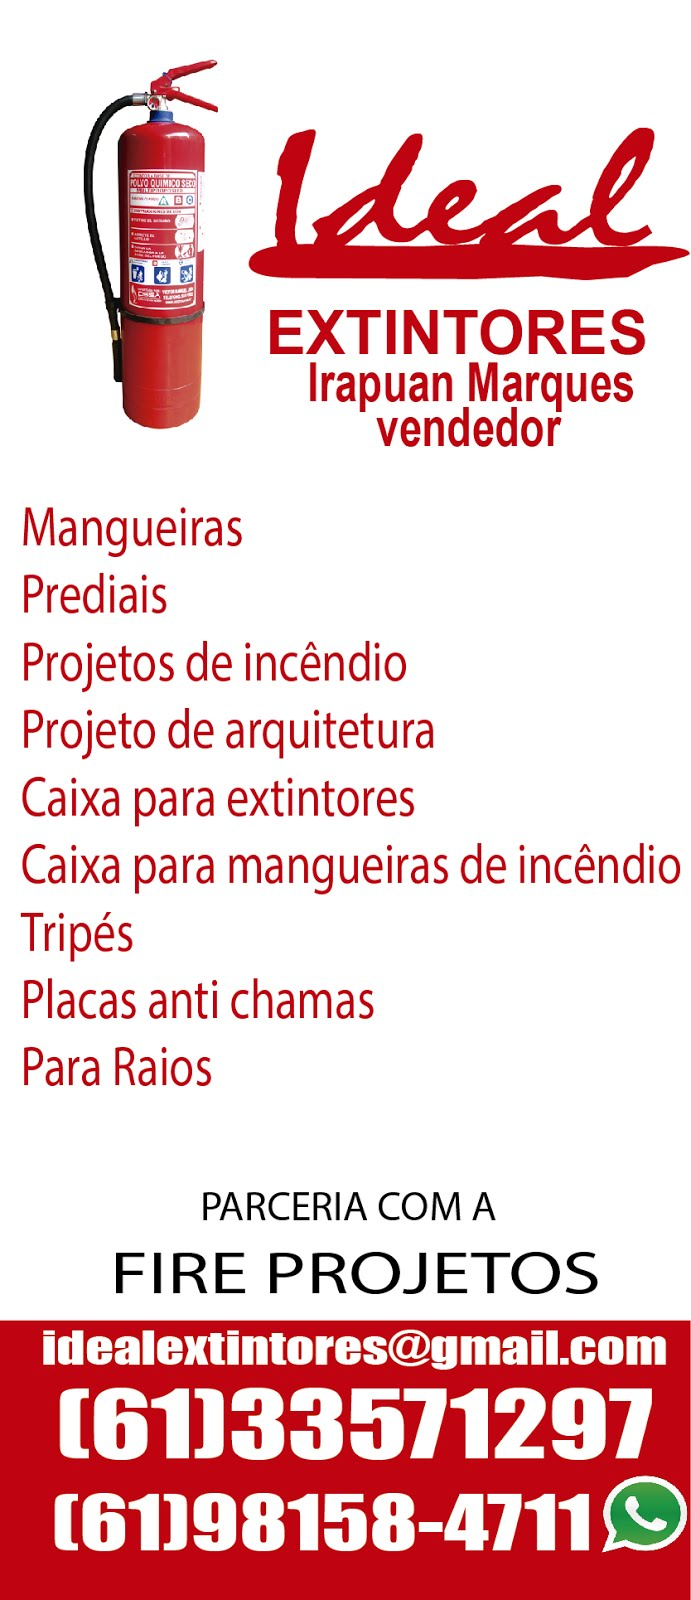 IDEAL EXTINTORES